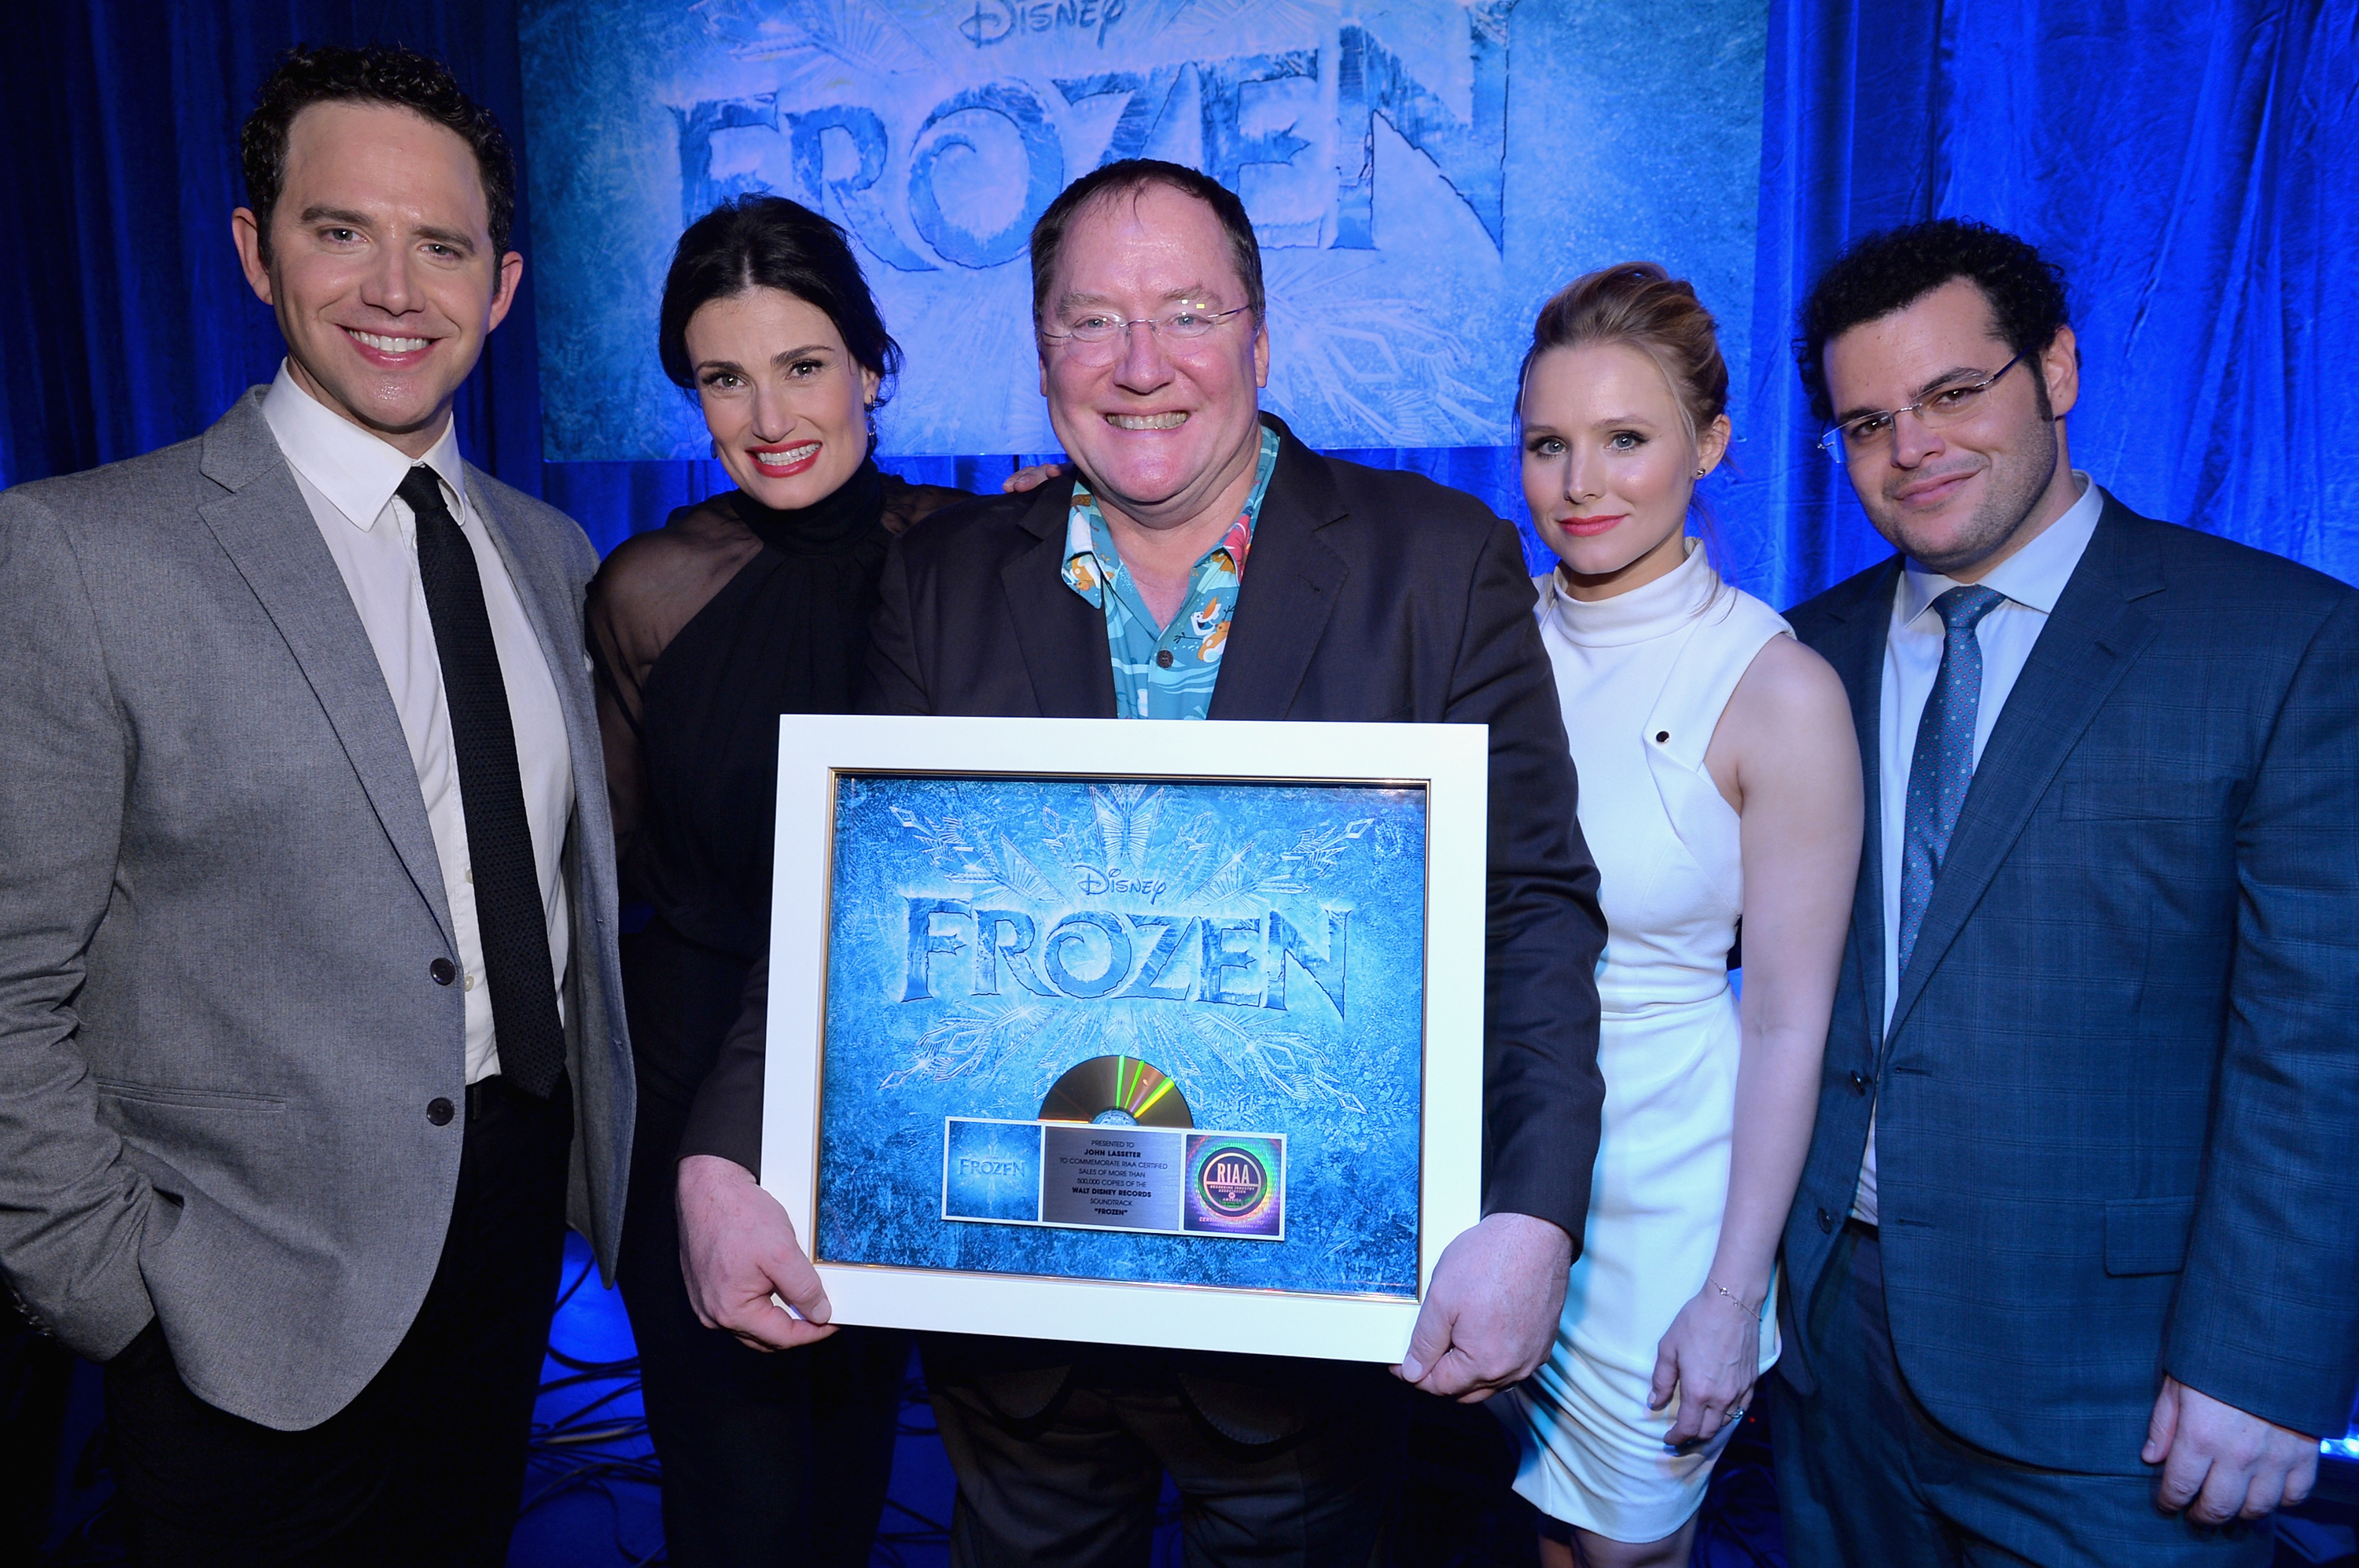 Executive producer John Lasseter (C) and the cast of Disney's  Frozen  were presented with gold records commemorating the success of the  Frozen  soundtrack.